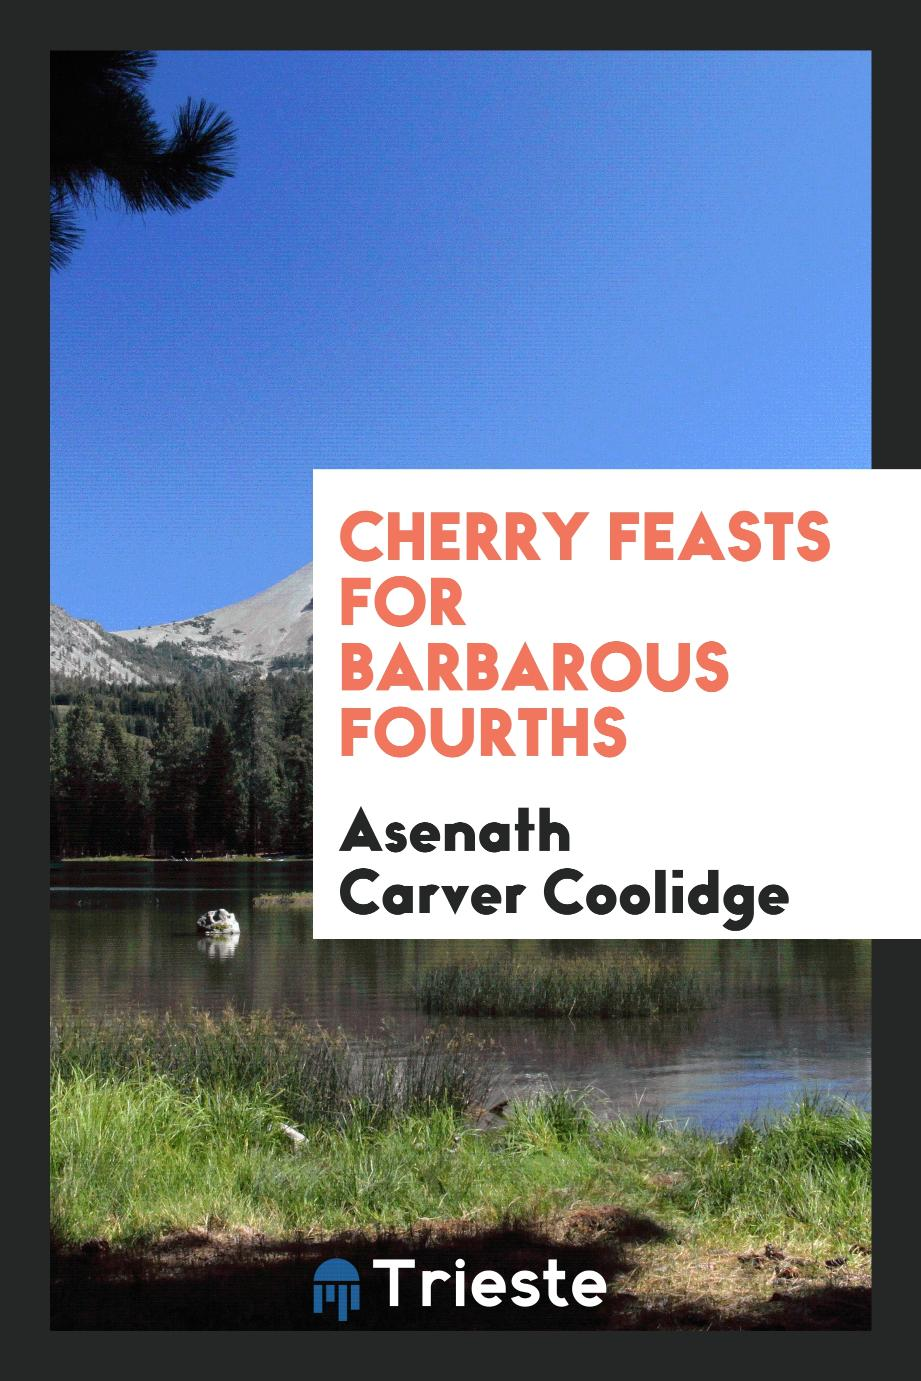 Cherry Feasts for Barbarous Fourths